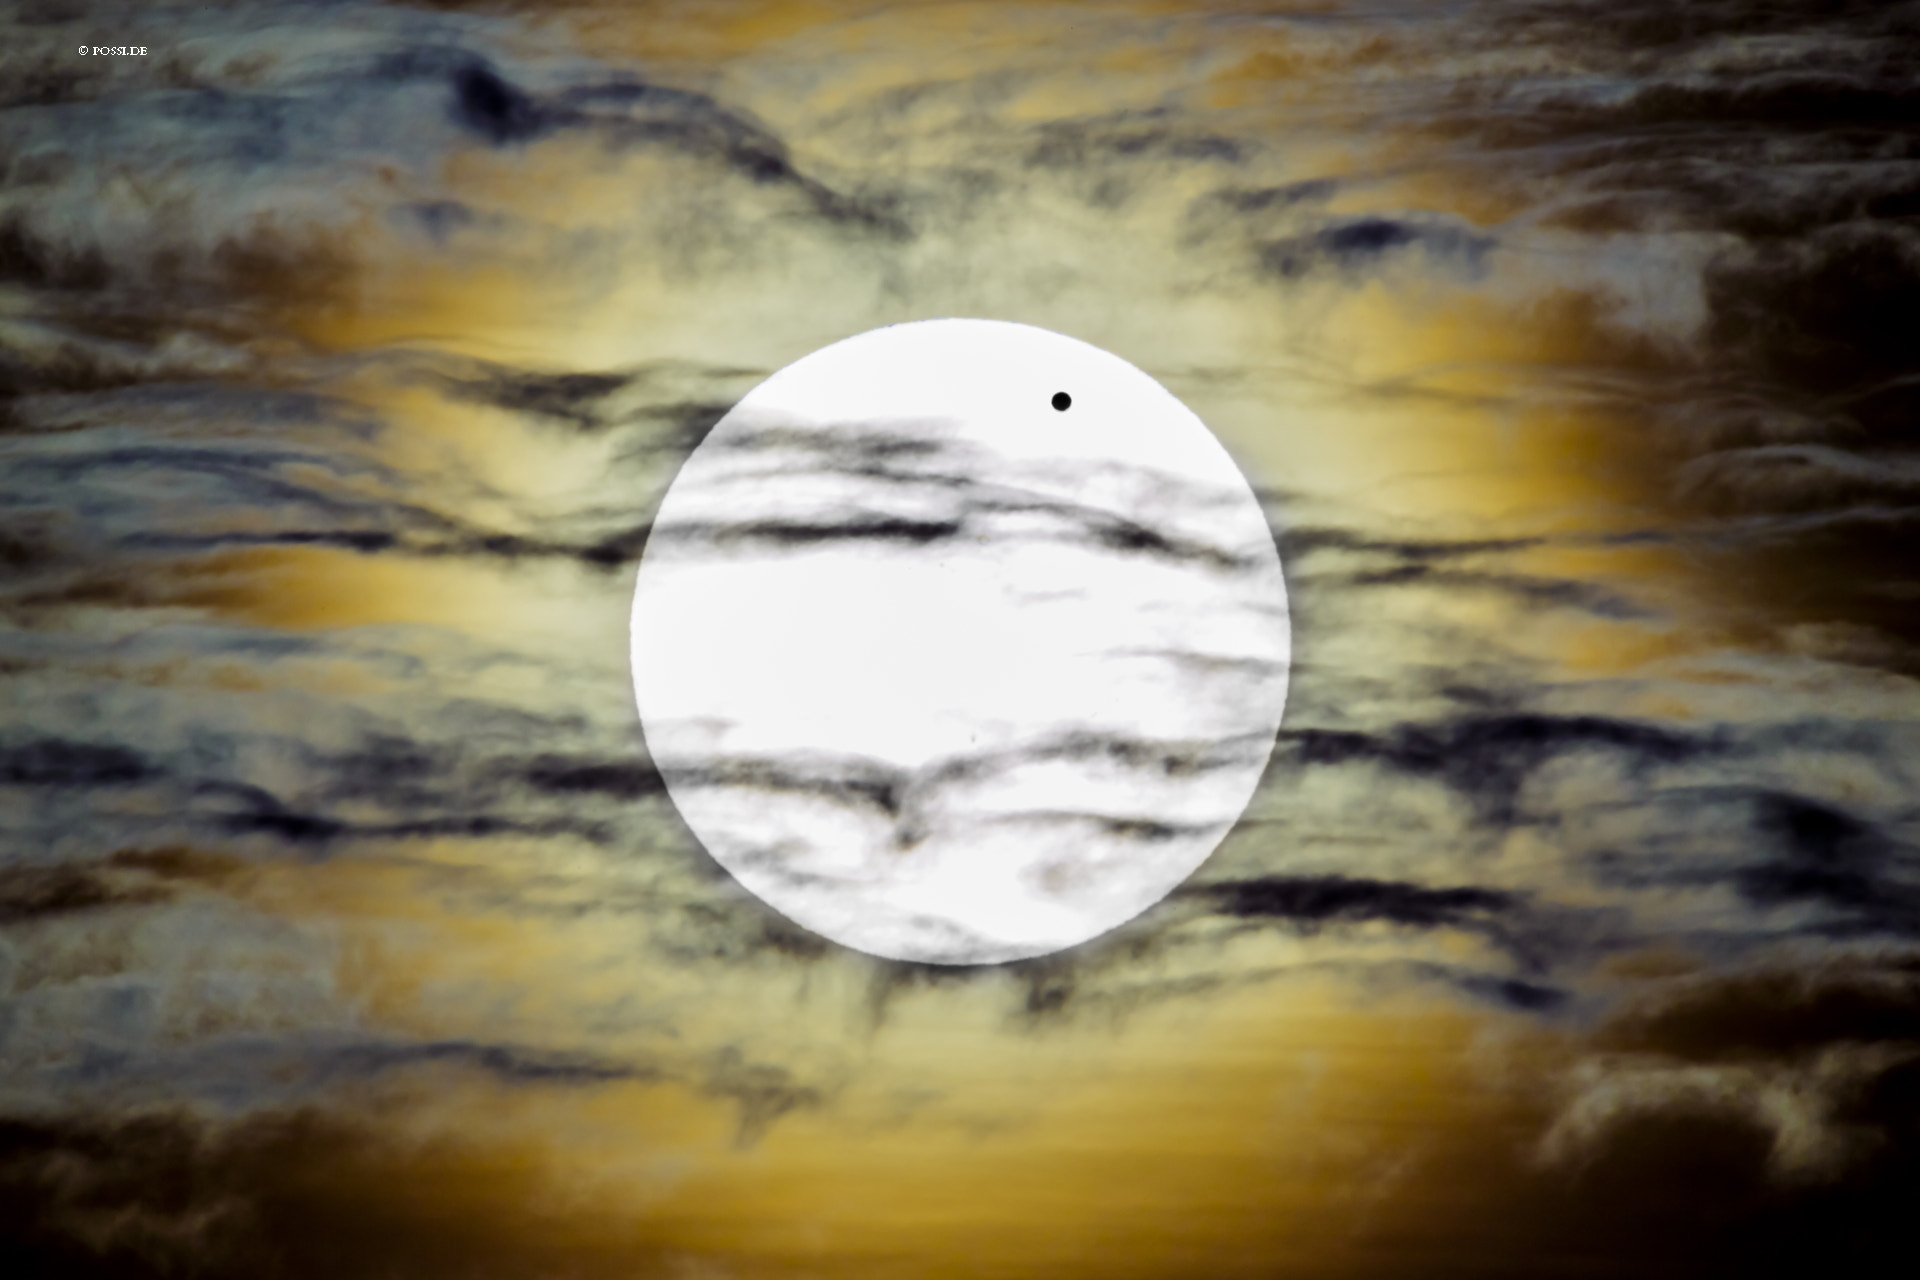 Photograph The Transit of the Venus by Anneliese & Claus Possberg on 500px